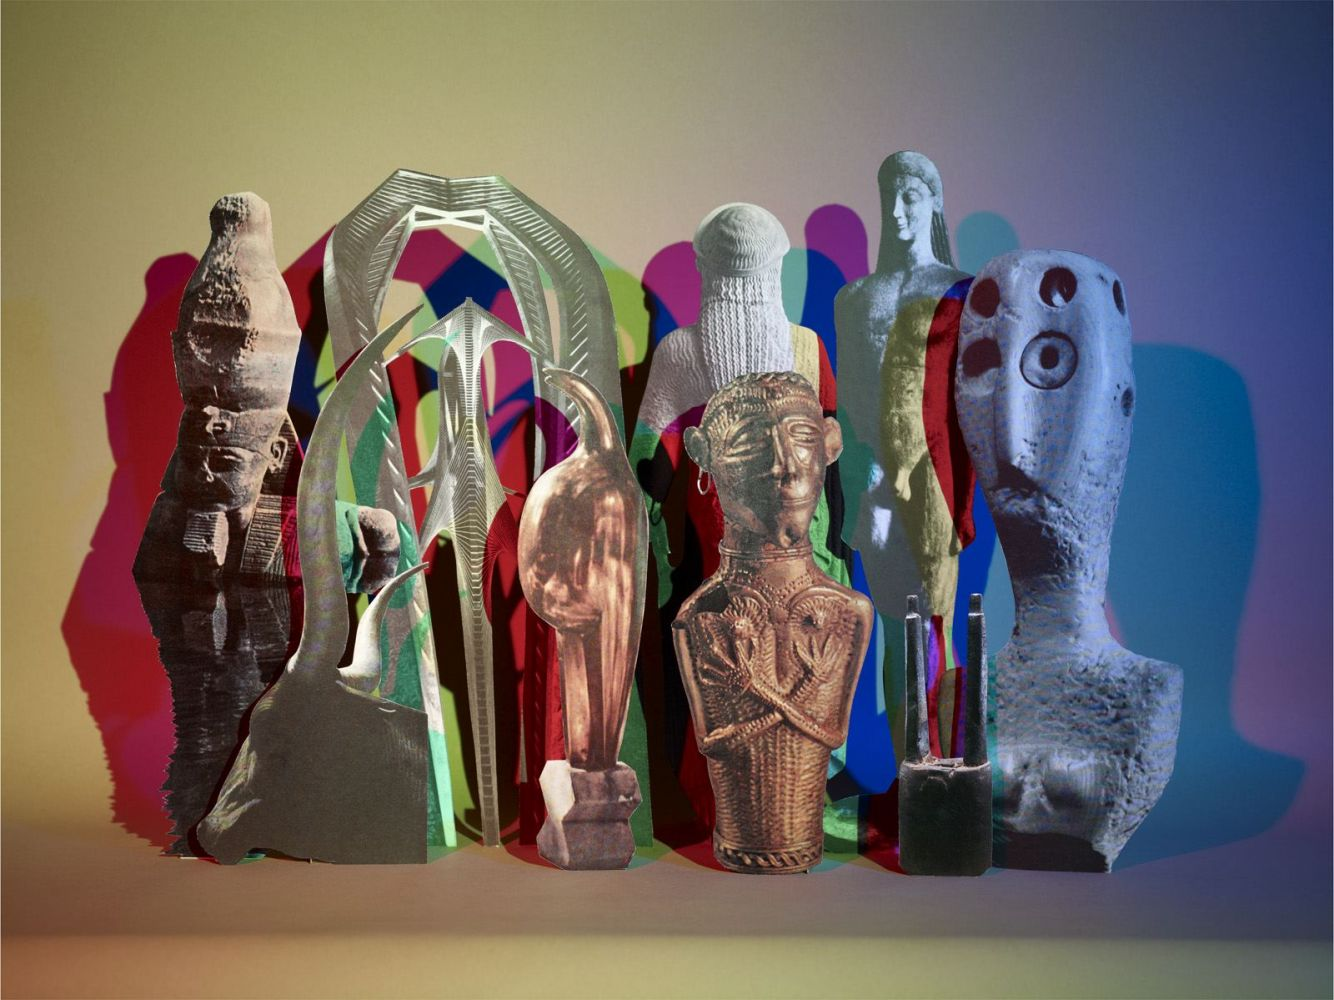 Untitled (Artifacts), 2010